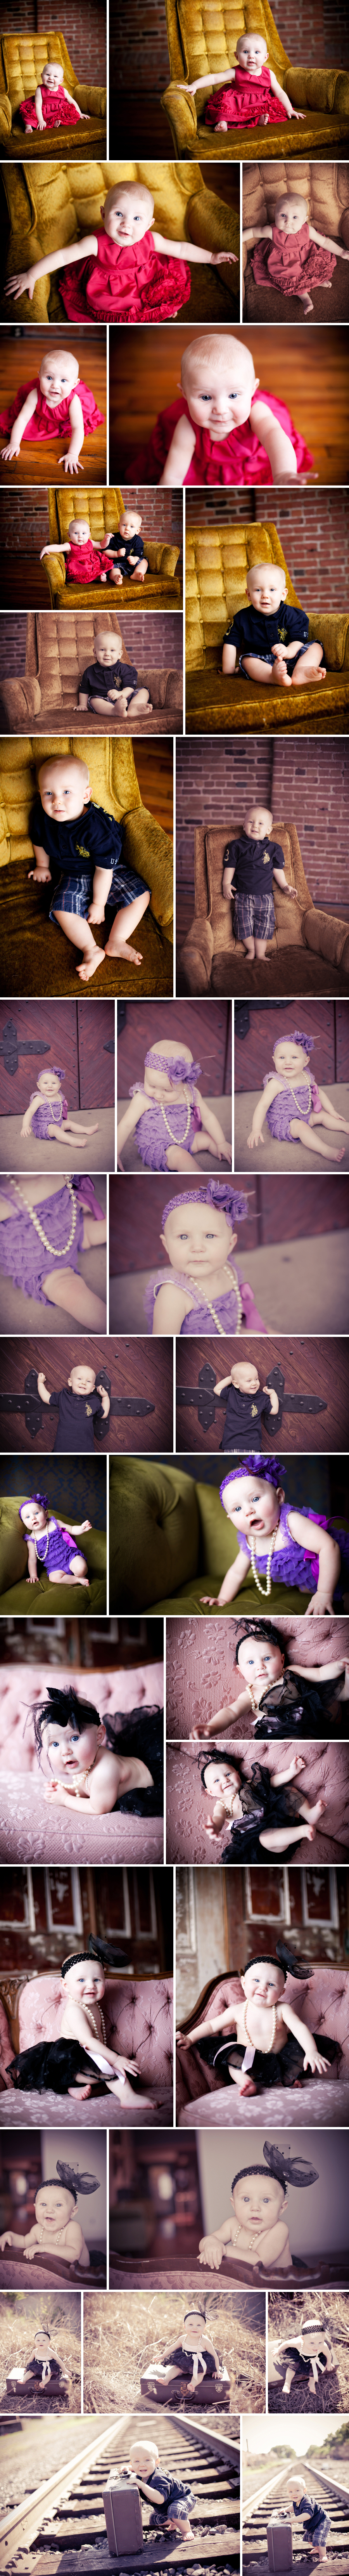 lane photography, nashville children